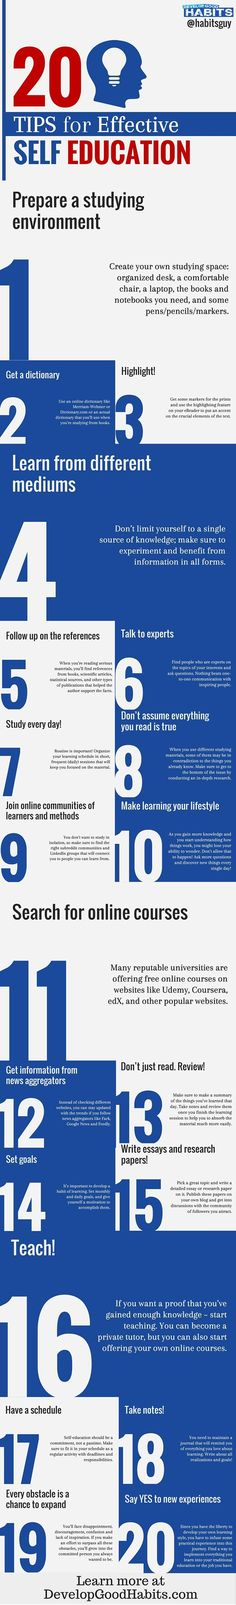 Tips for continuing your self education. Regardless of age! These days self education and growth is a lifelong habit. See some simple tips for getting the most out of time and ongoing education. |  |Learning |Self education | adult learning | continuing education| How we learn